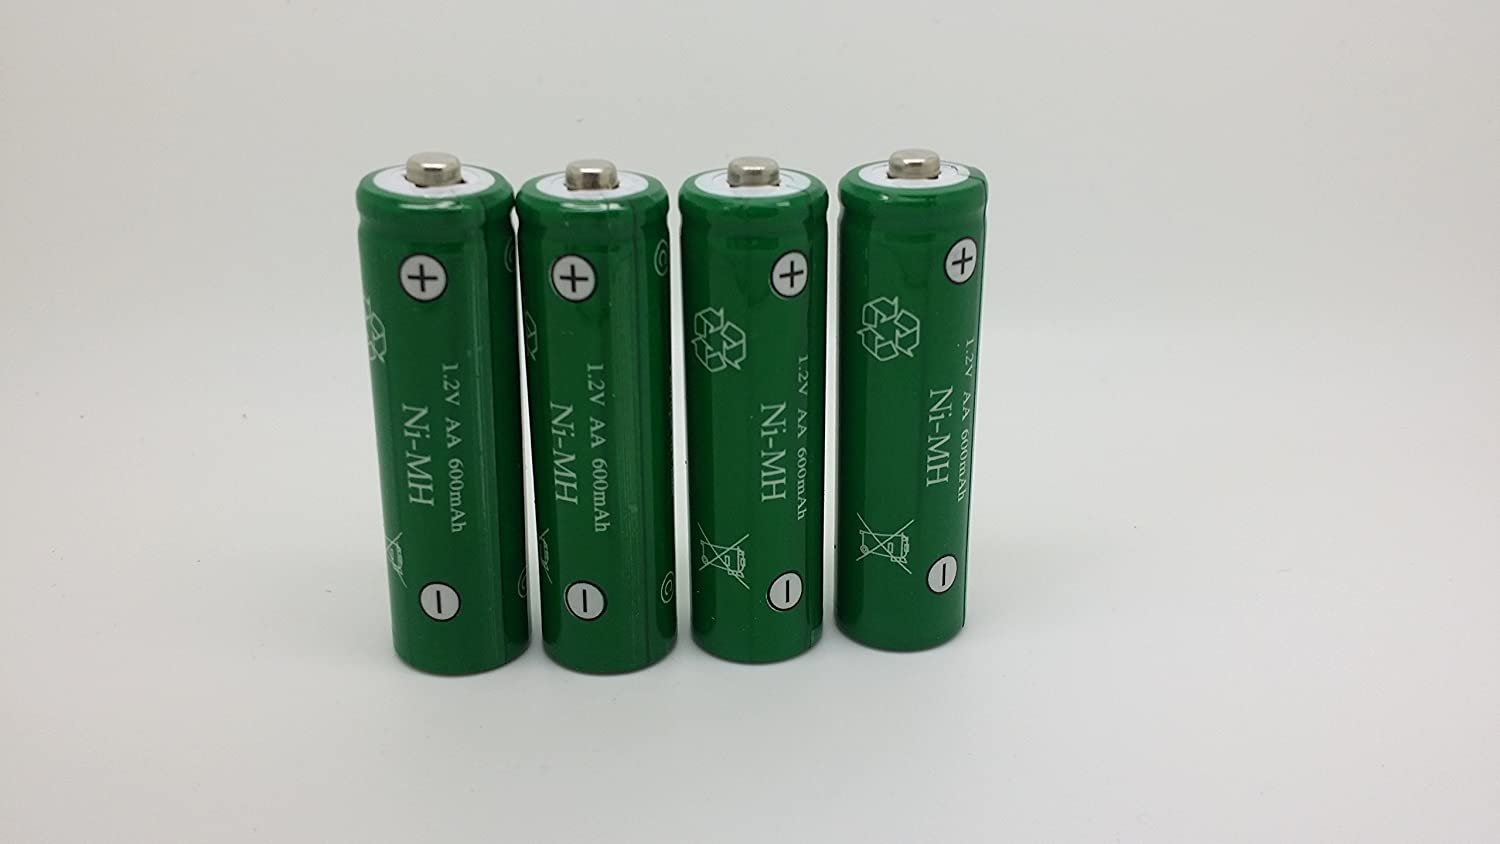 4 pieces AA 600mAh Ni-Mh Rechargeable Battery Garden Solar Landscape Path Lights can replace 300mAh NiCd AA, 600mAh NiCd, or any 300//600Ni-Mh cells with 100/% longer running time